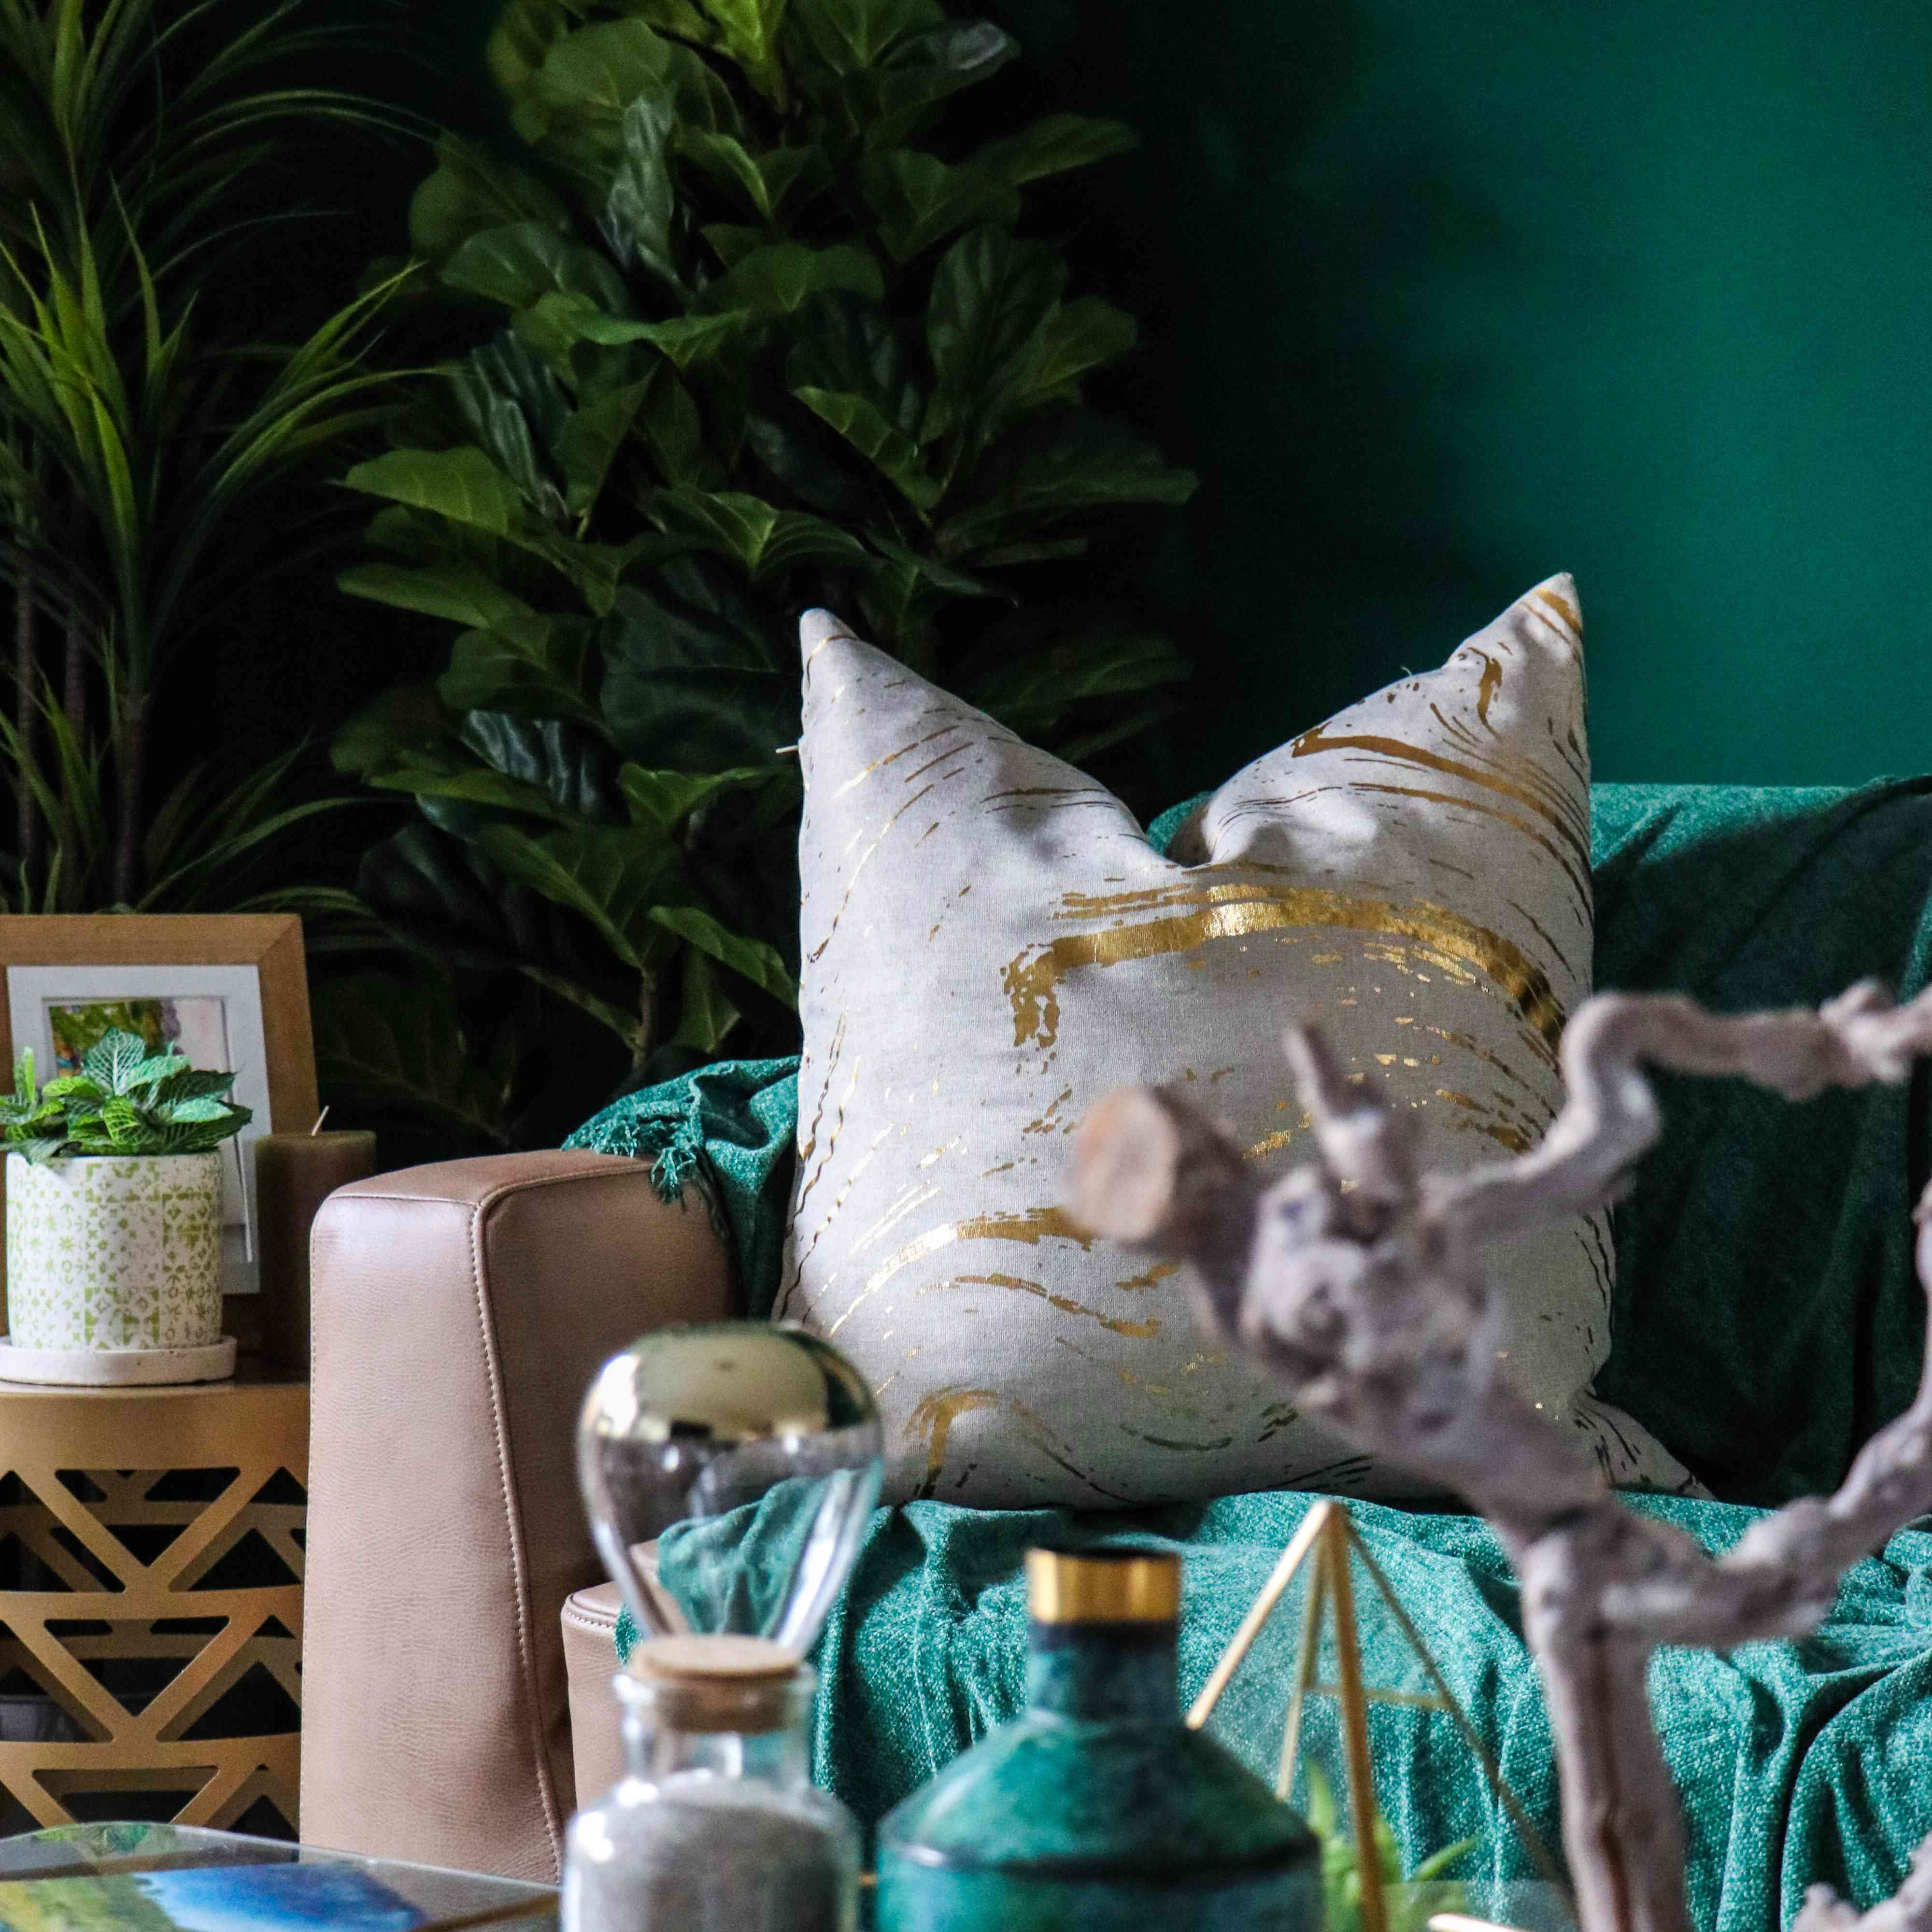 green and teal toned room with lush green plants